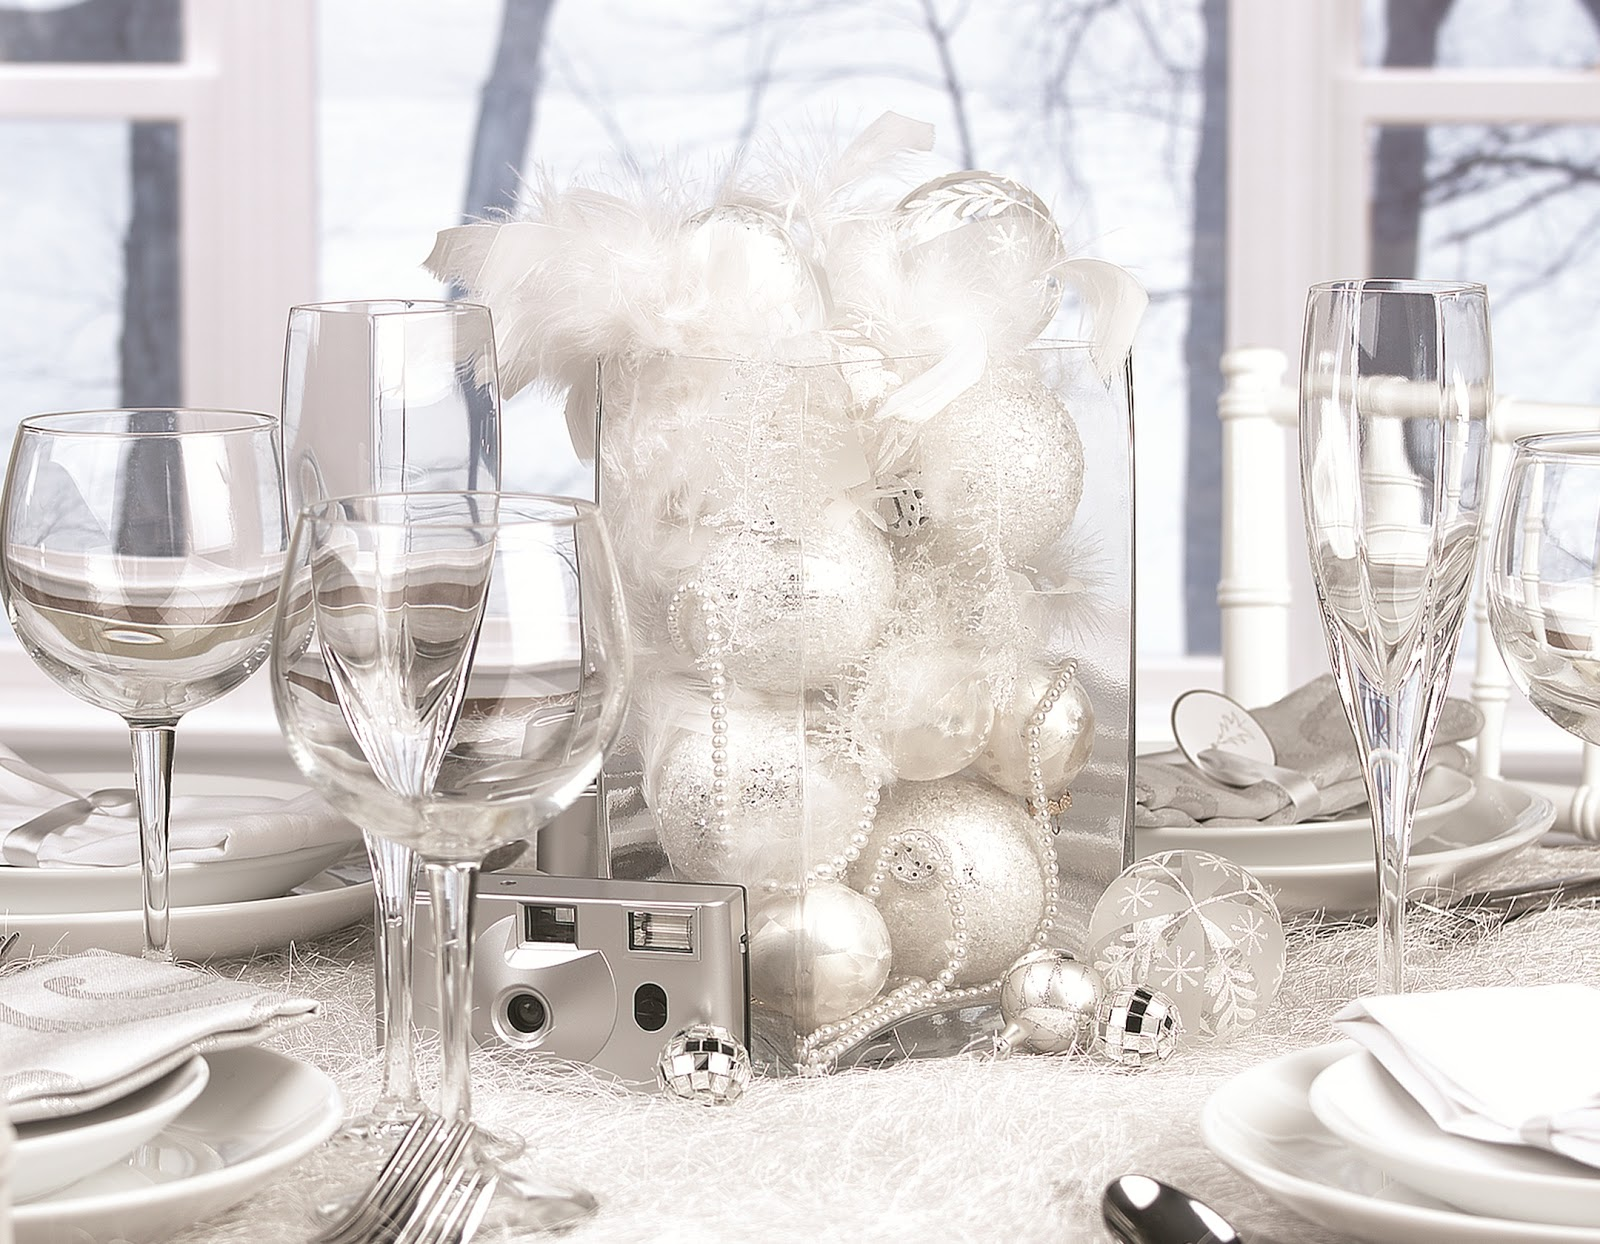 Warm up to winter white winter white wonderland holdiay for Deco de table noel